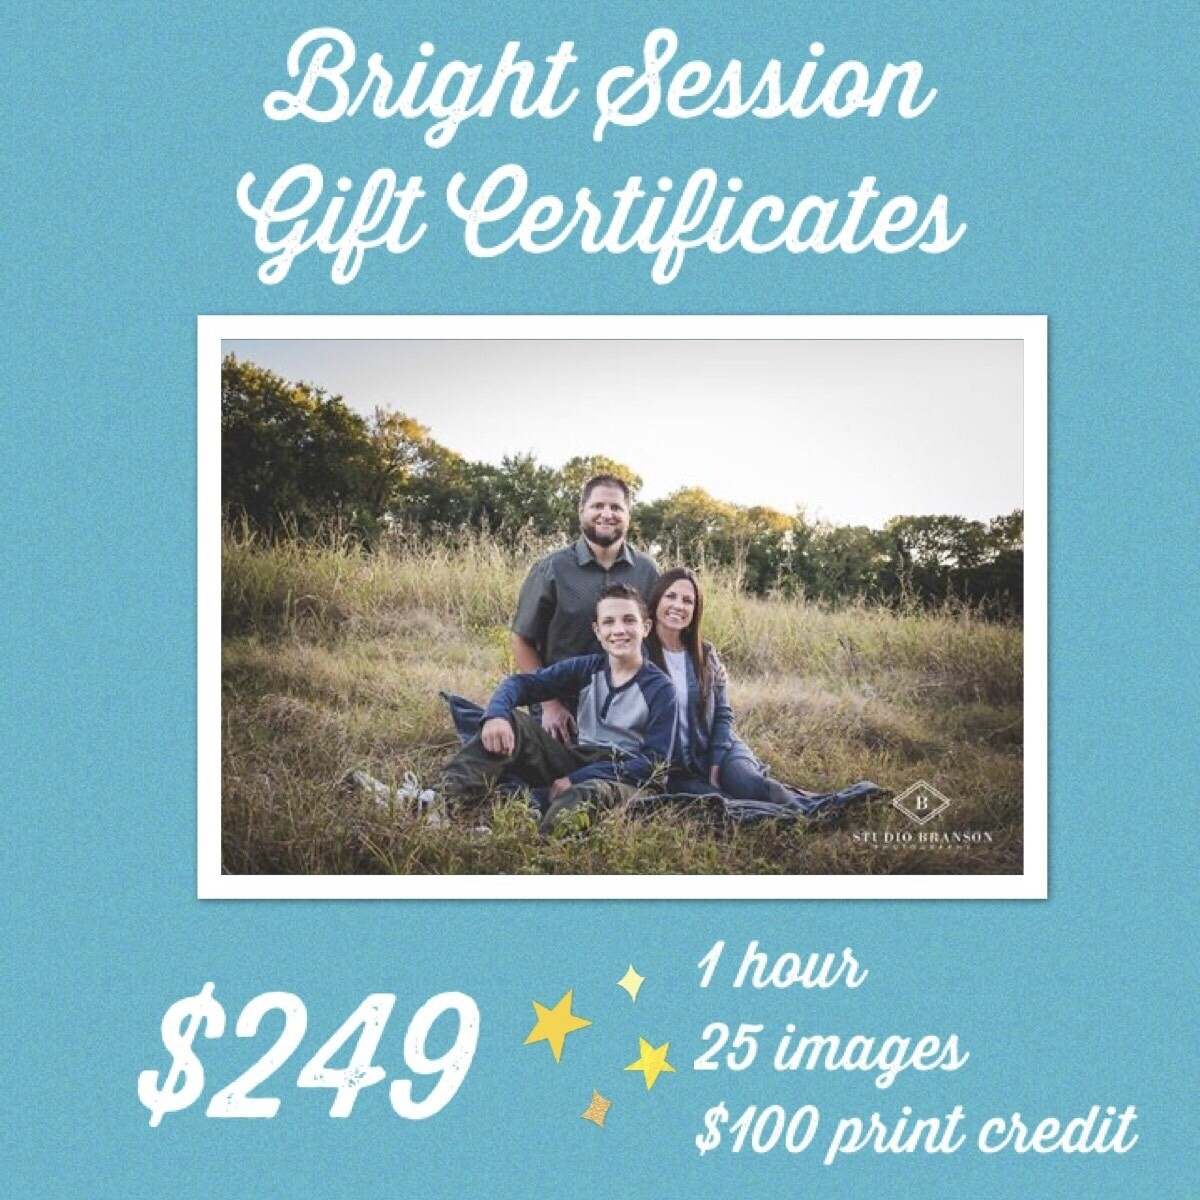 Bright Family Session Gift Certificate